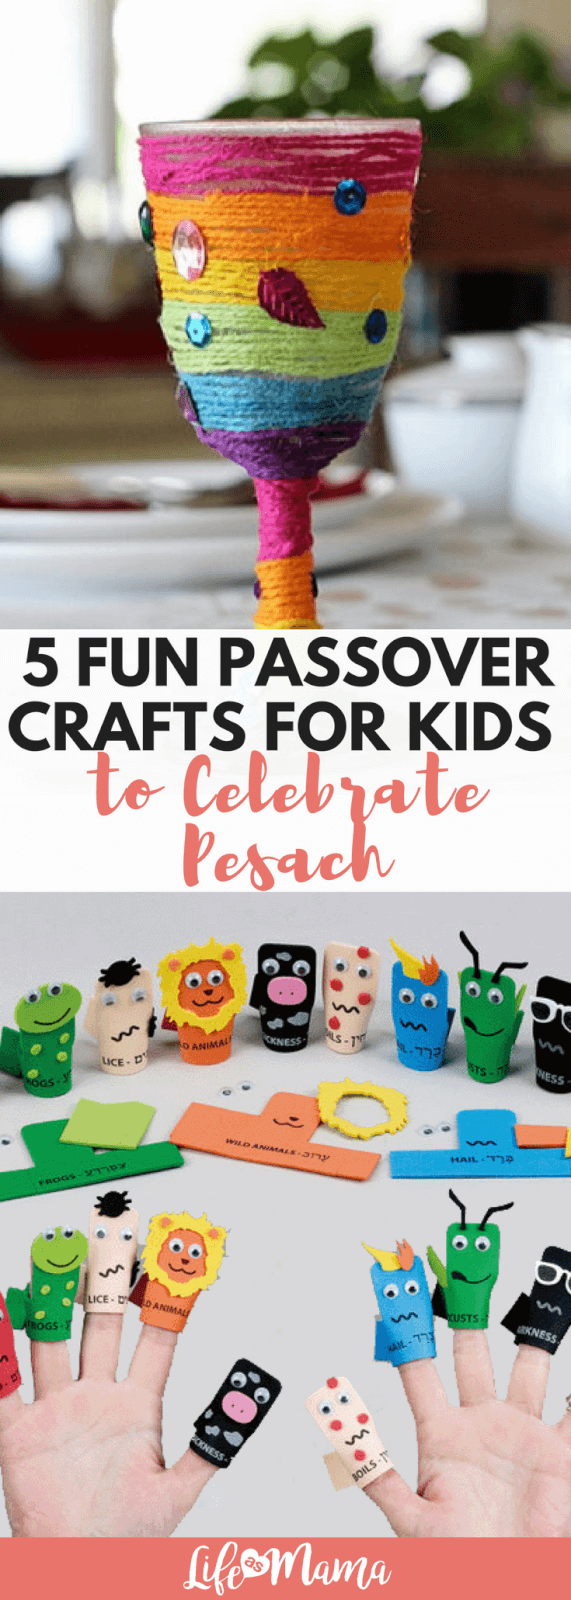 5 Fun Passover Crafts For Kids to Celebrate Pesach